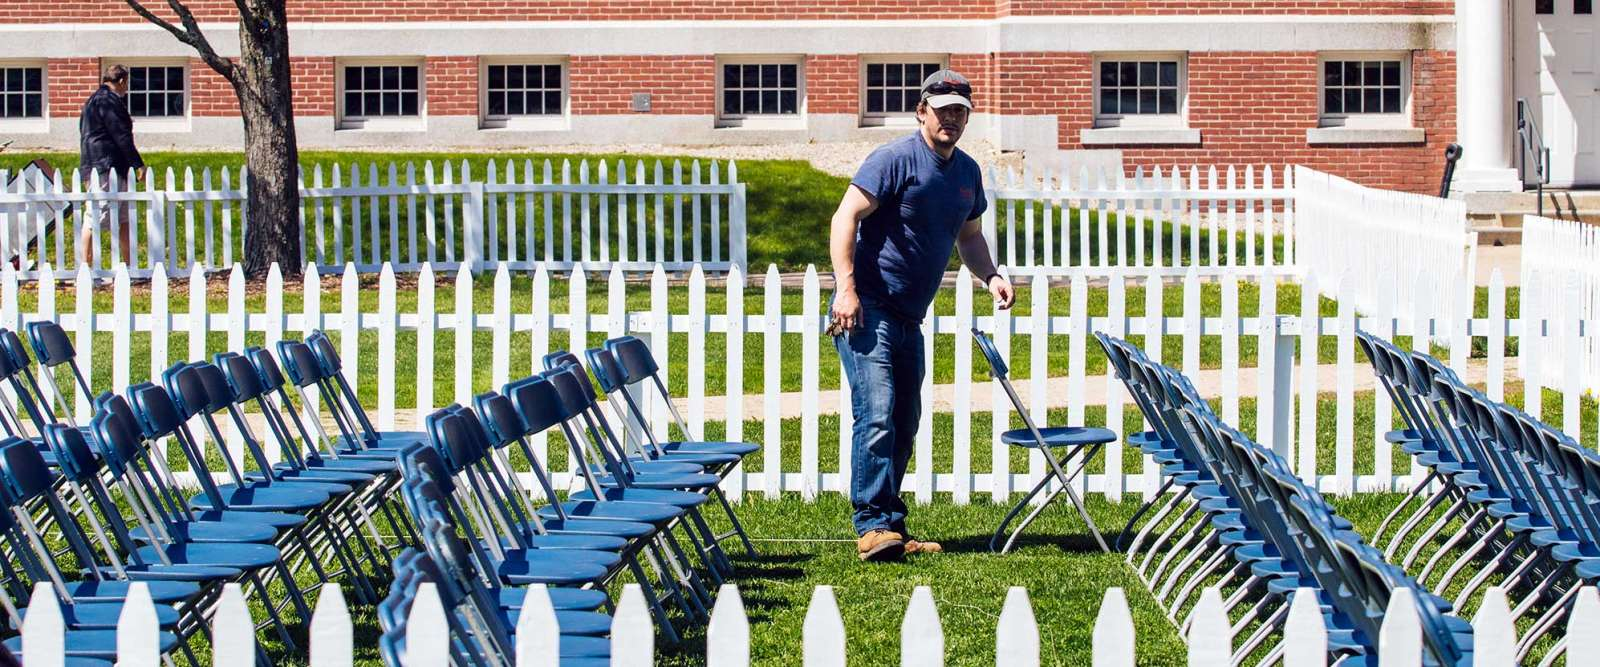 Grounds Crew Setting Up for Commencement